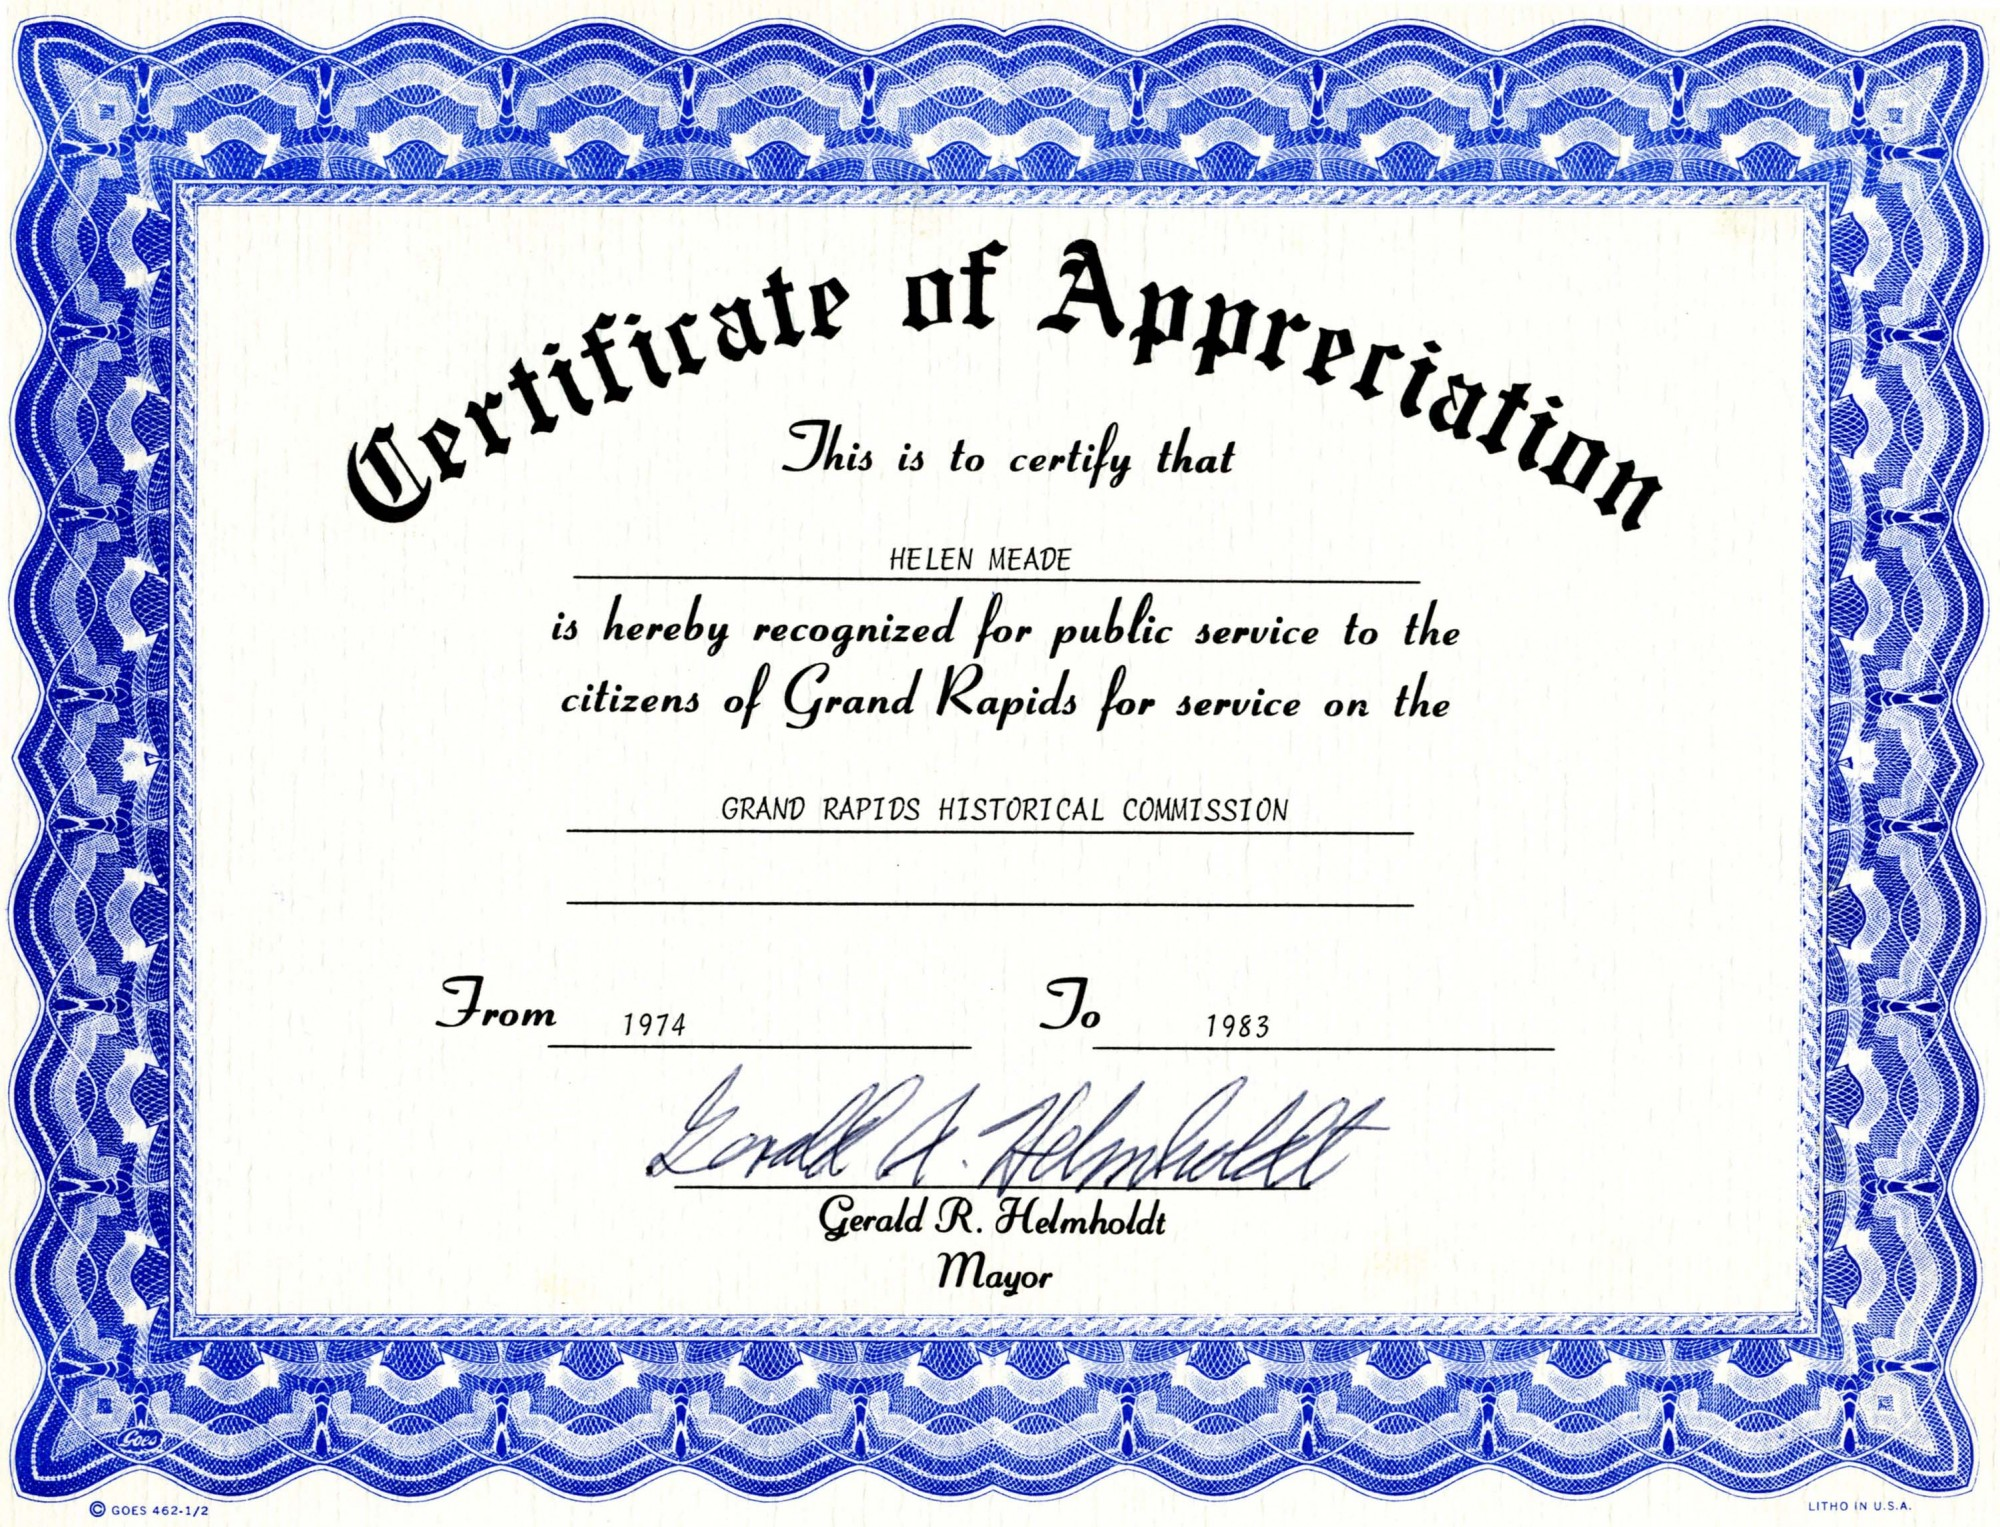 Certificate of Appreciation History Grand Rapids QgAhnVV9